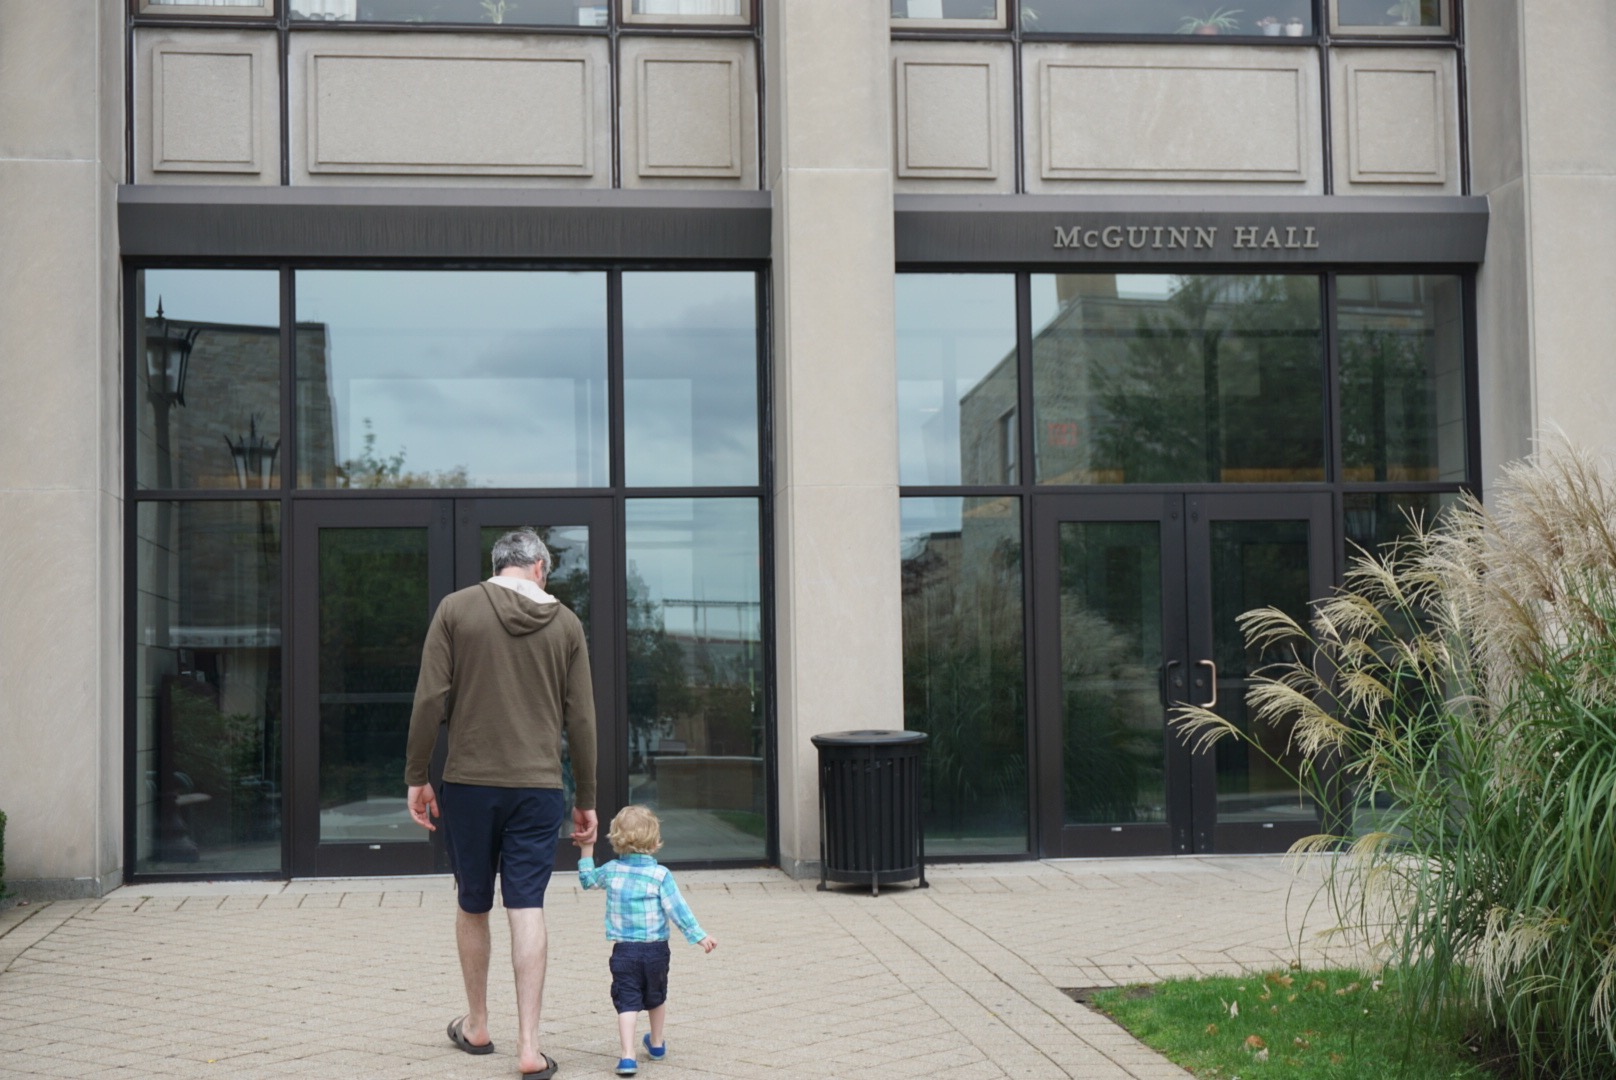 Leo and his Dad walk to McGuinn Hall from the Beacon Street Entrance.